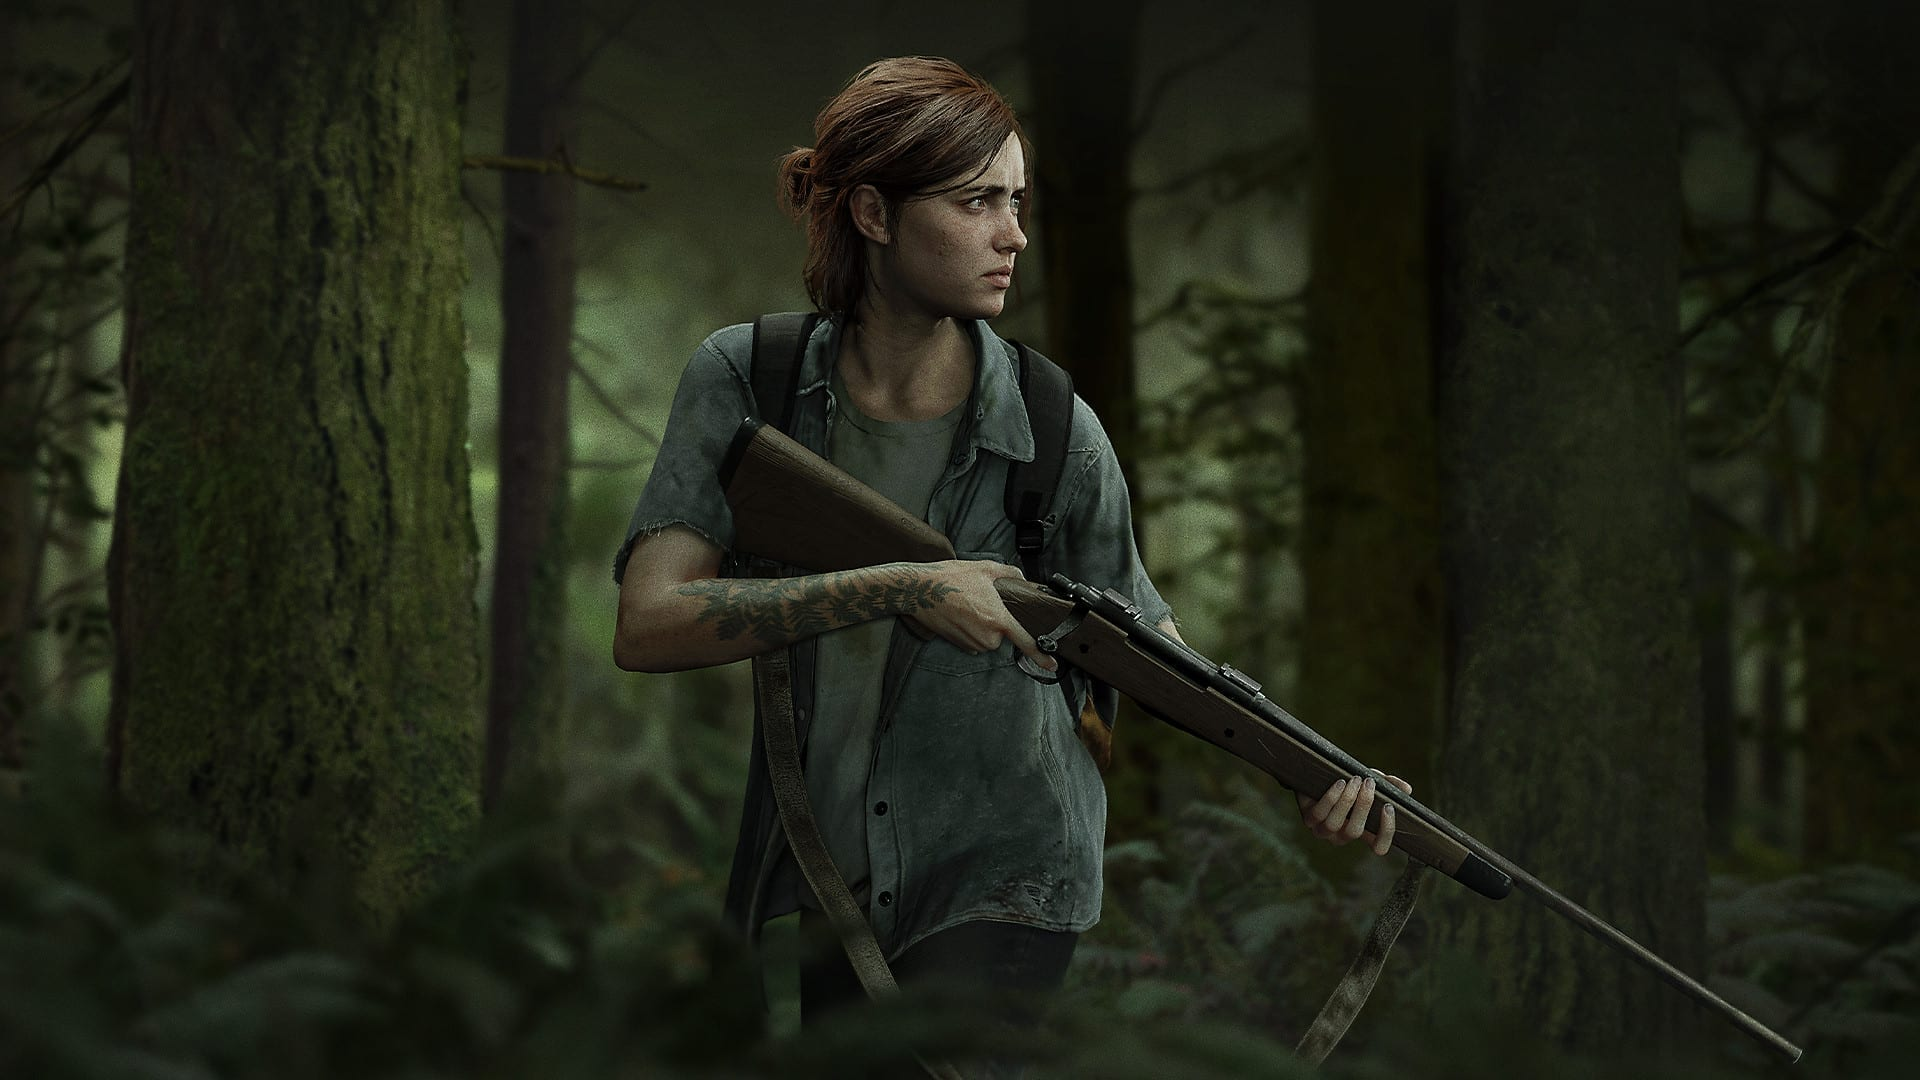 Sony's Latest State of Play gave a us another look at The Last of Us Part II